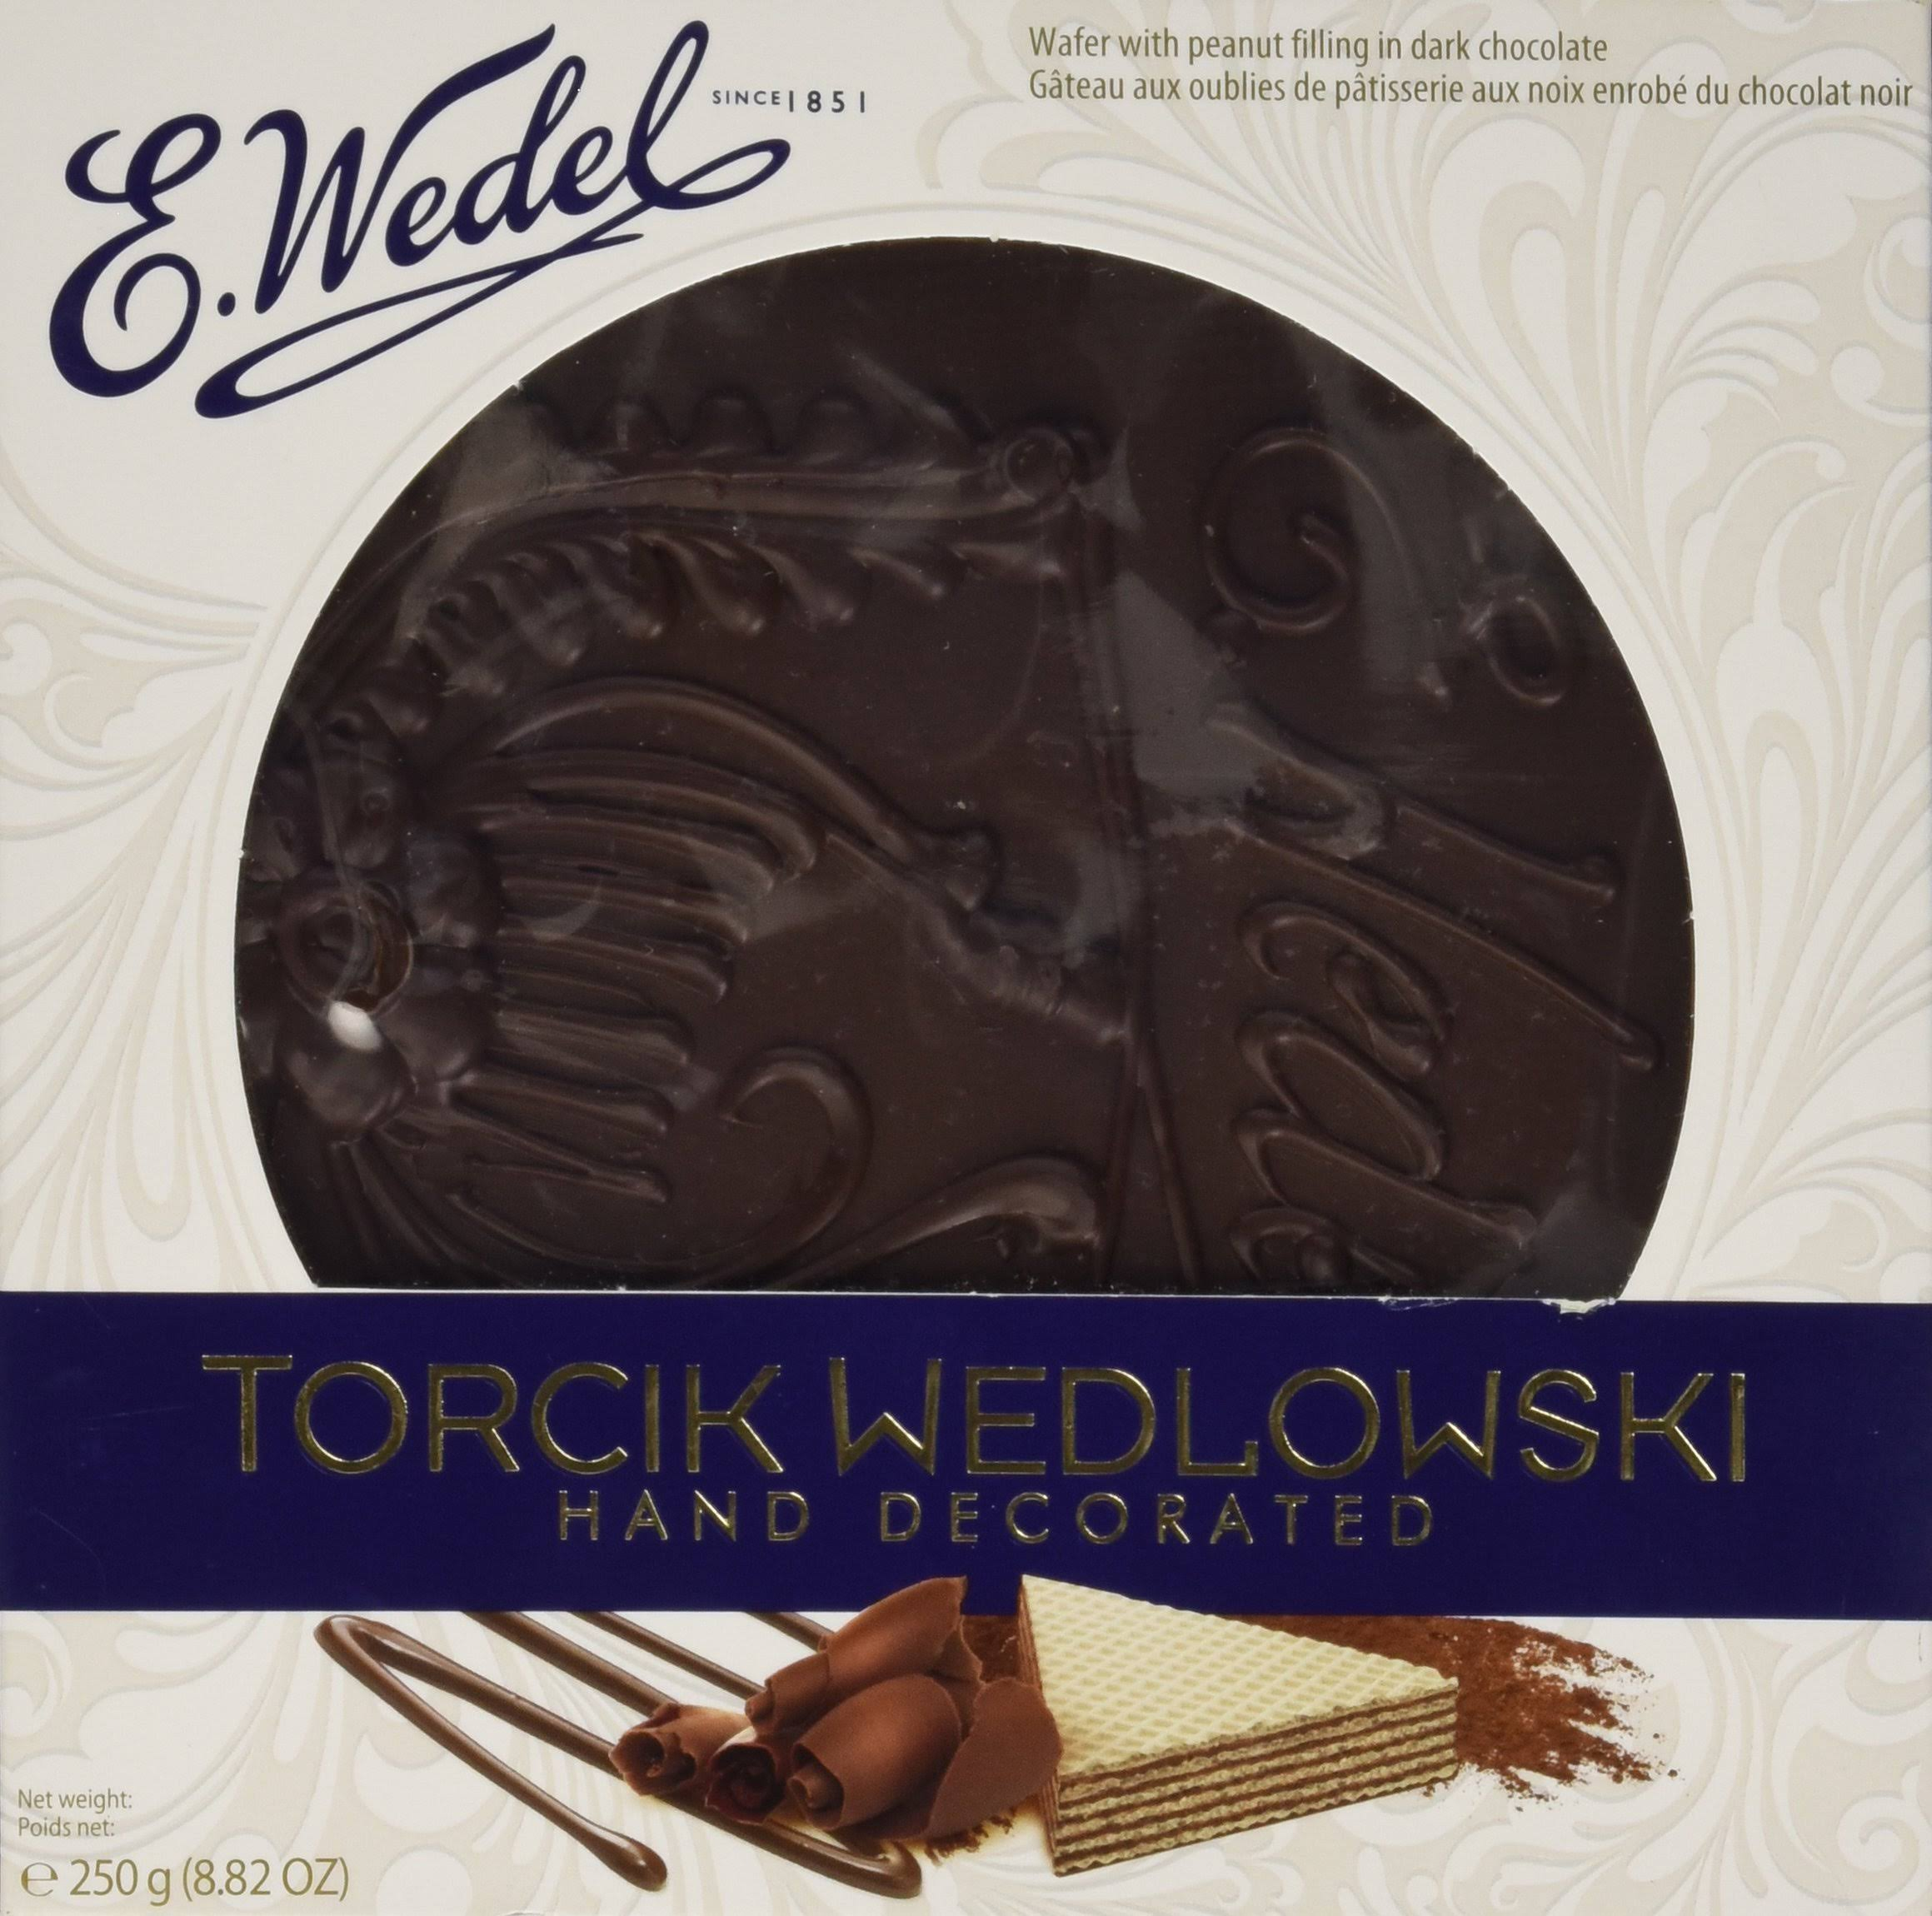 E. Wedel Wedlowski Wafer - Peanut Filling In Dark Chocolate, 250g